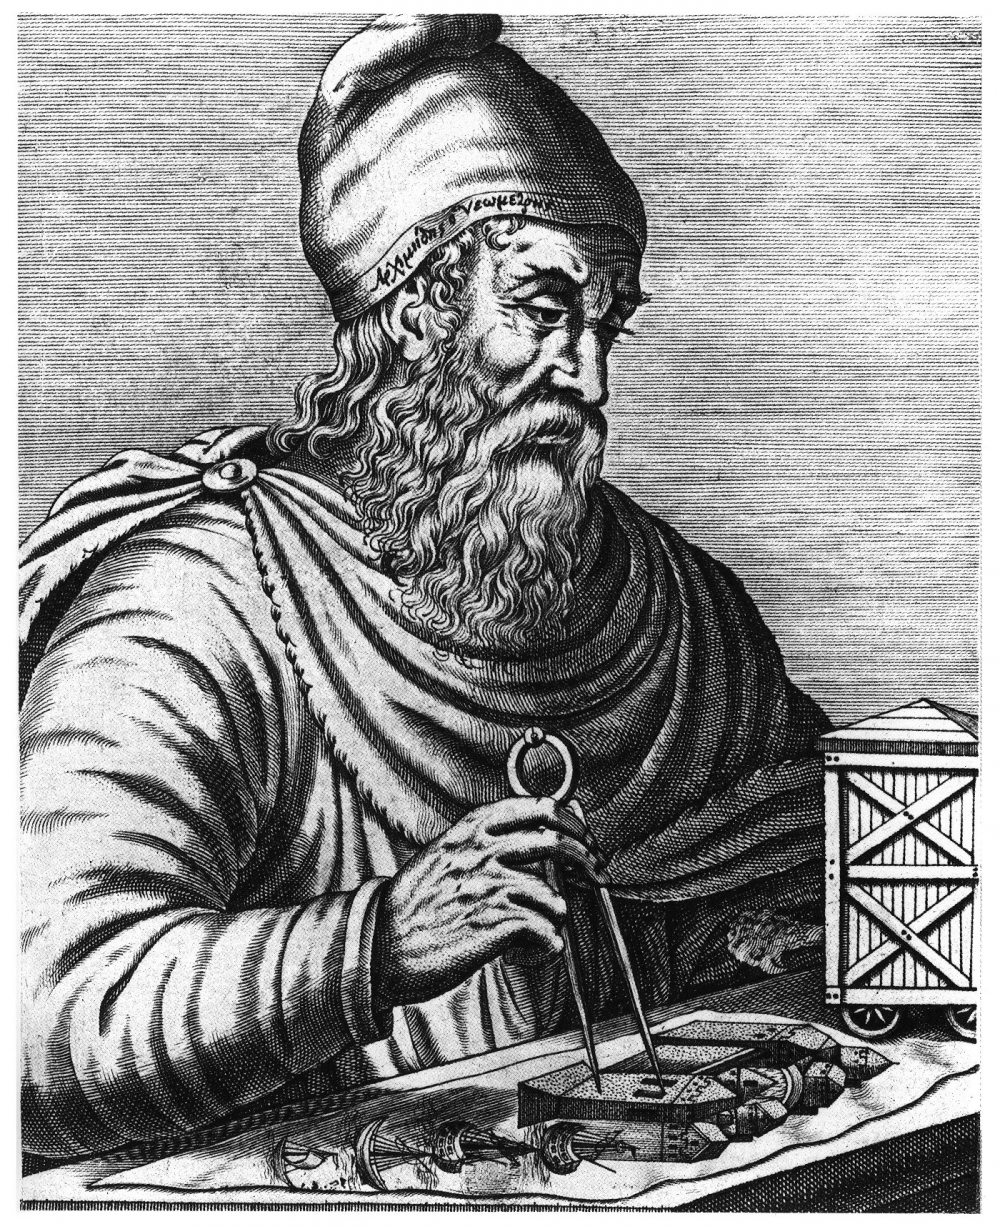 Archimedes - Ancient Greek scientist